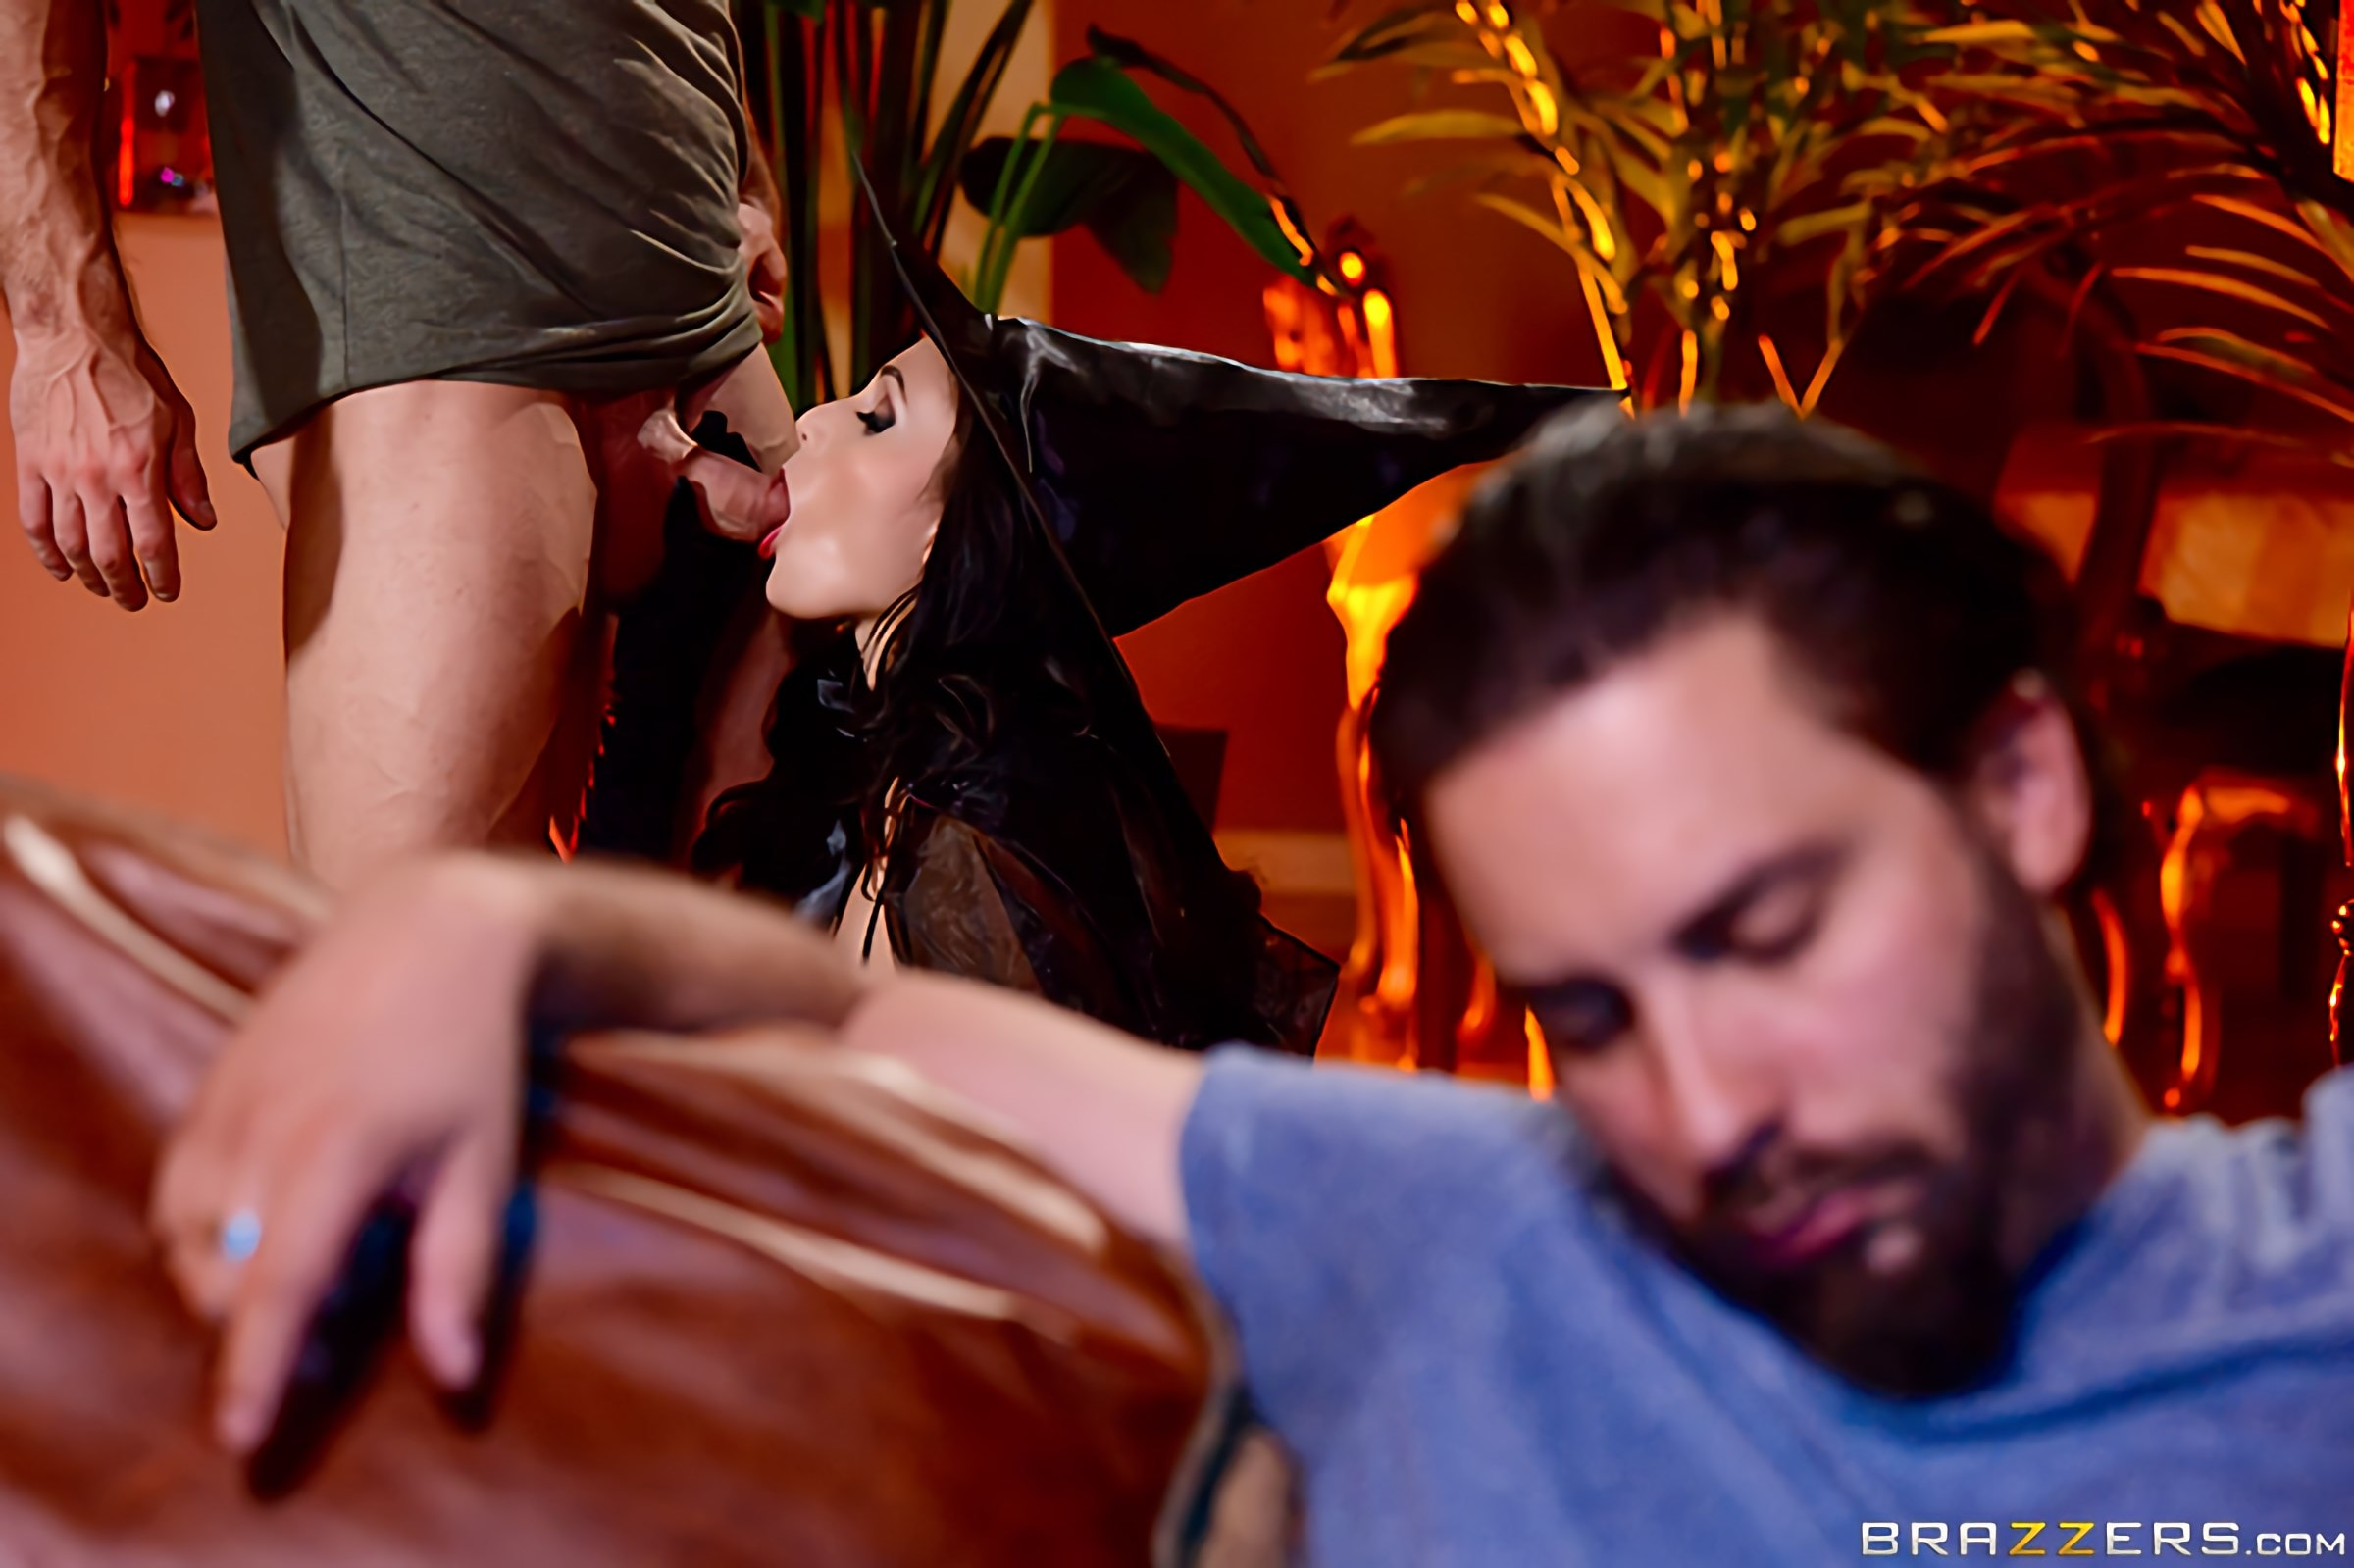 Brazzers 'Dick Or Treat' starring Ariana Marie (Photo 1)